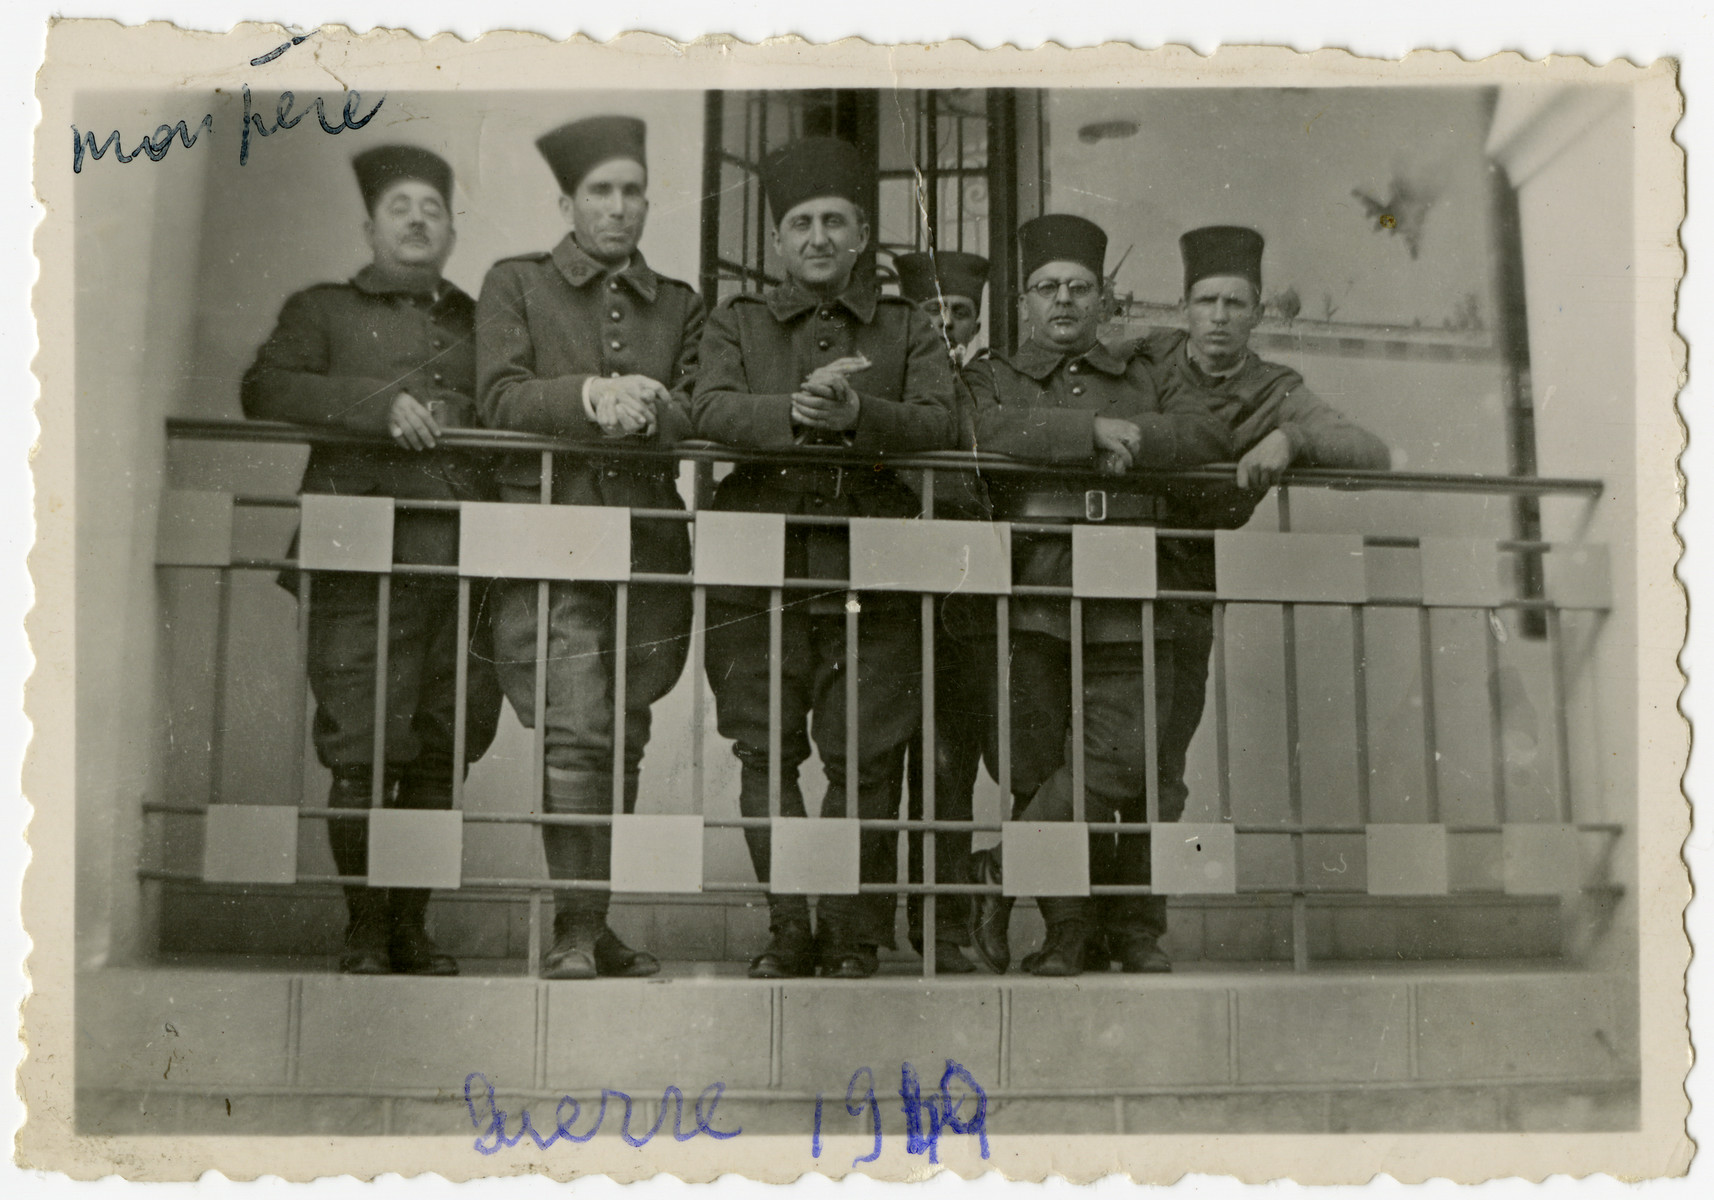 French Algerian soldiers pose on the balcony of the Bardo Palace on the outskirts of Tunis, which was converted into a military barracks.  Jacques El Haik (the father of Arlette Benichou) is standing on the left.